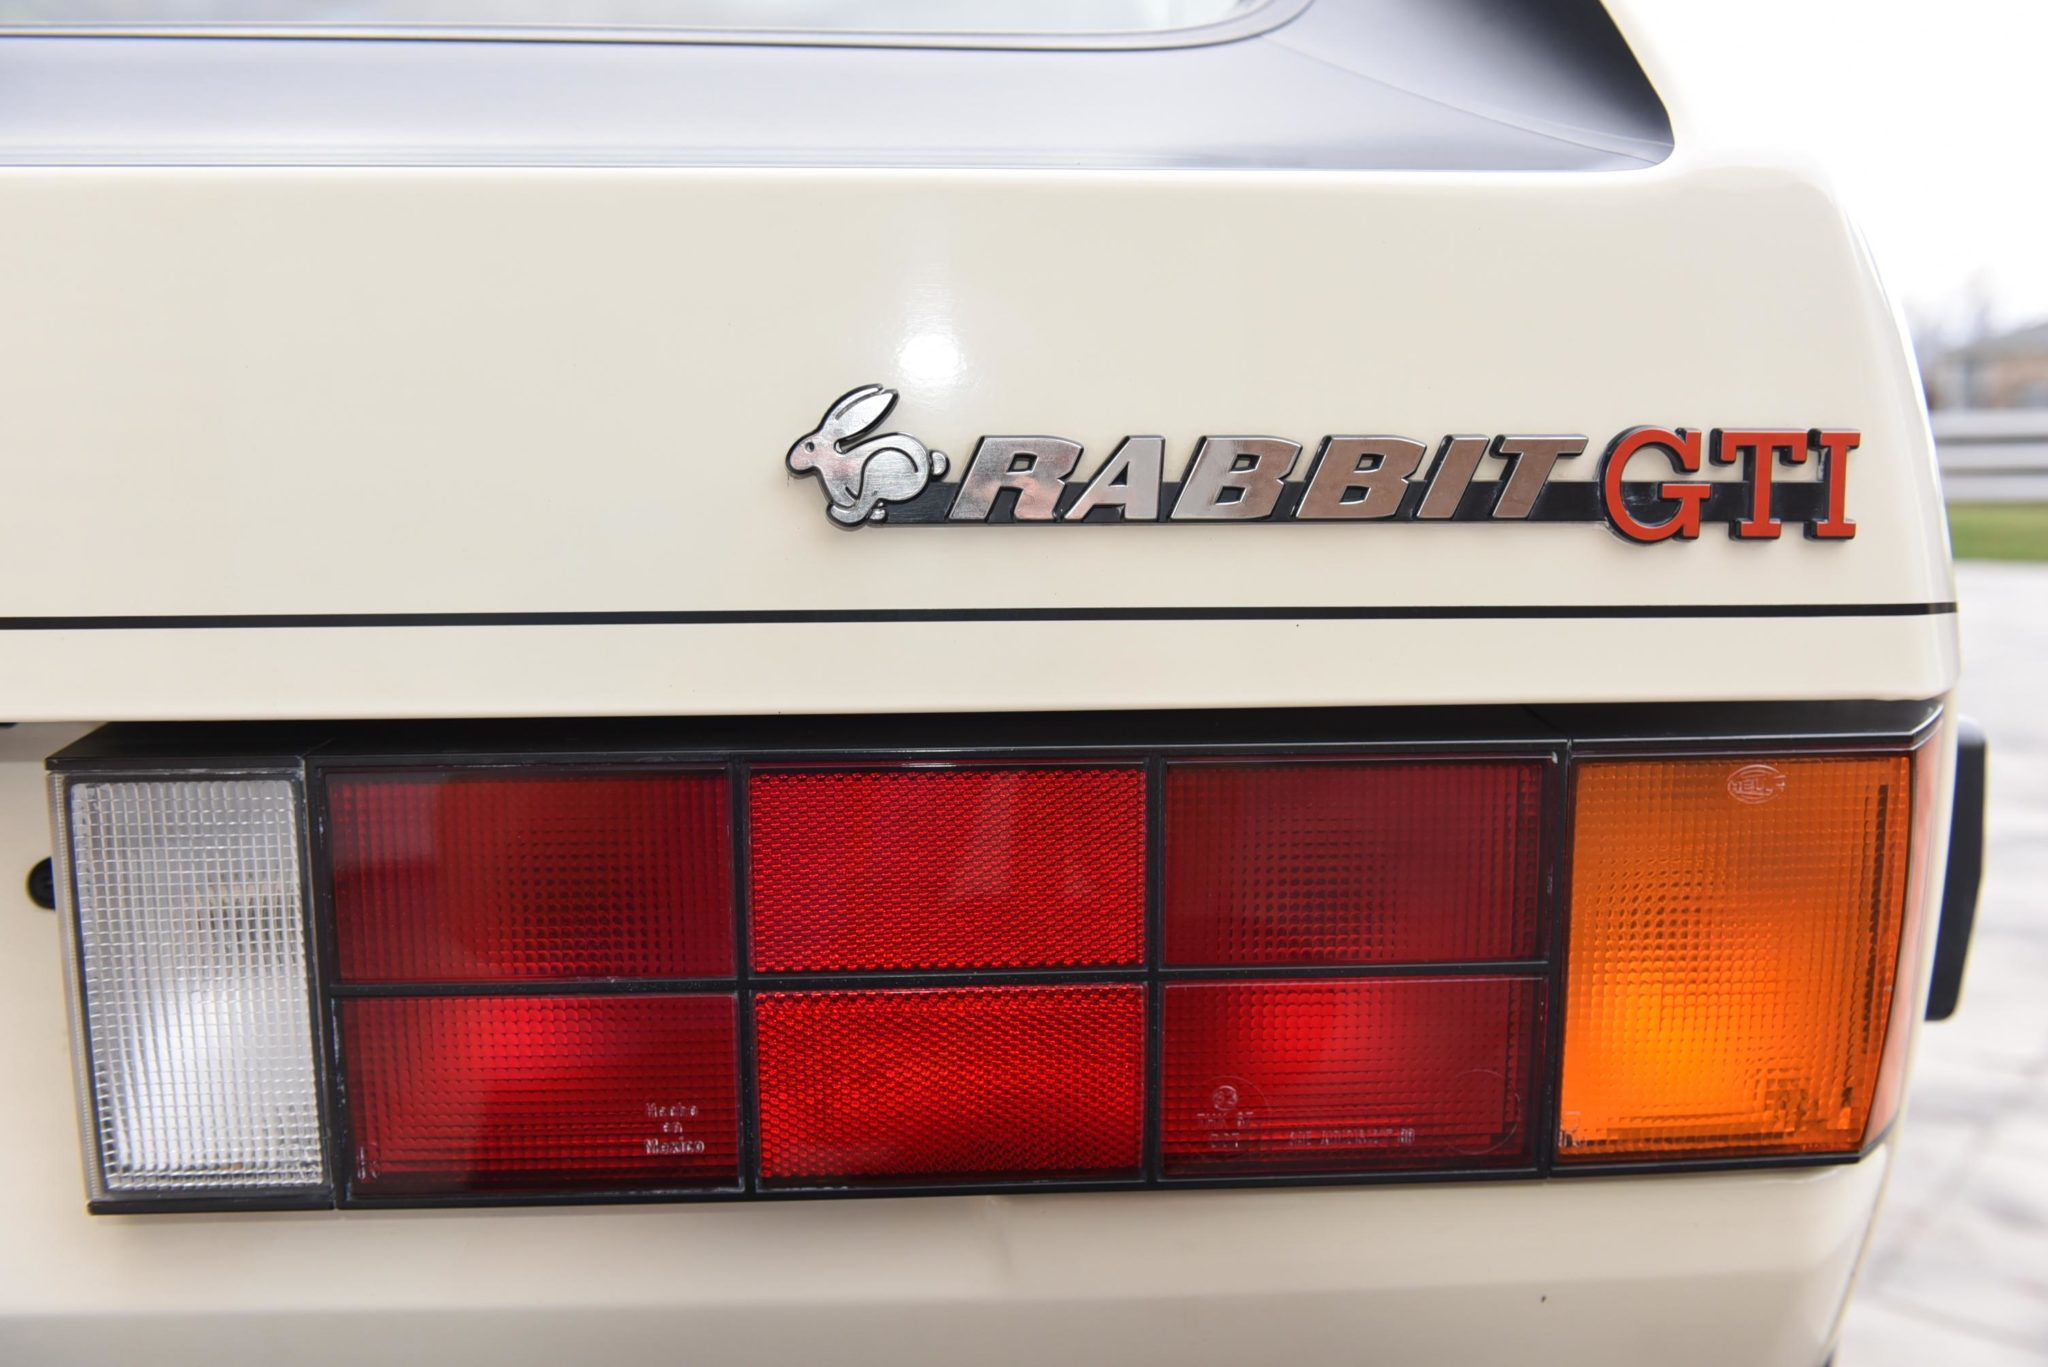 Volkswagen Rabbit GTI Callaway Turbo Stage II Badging